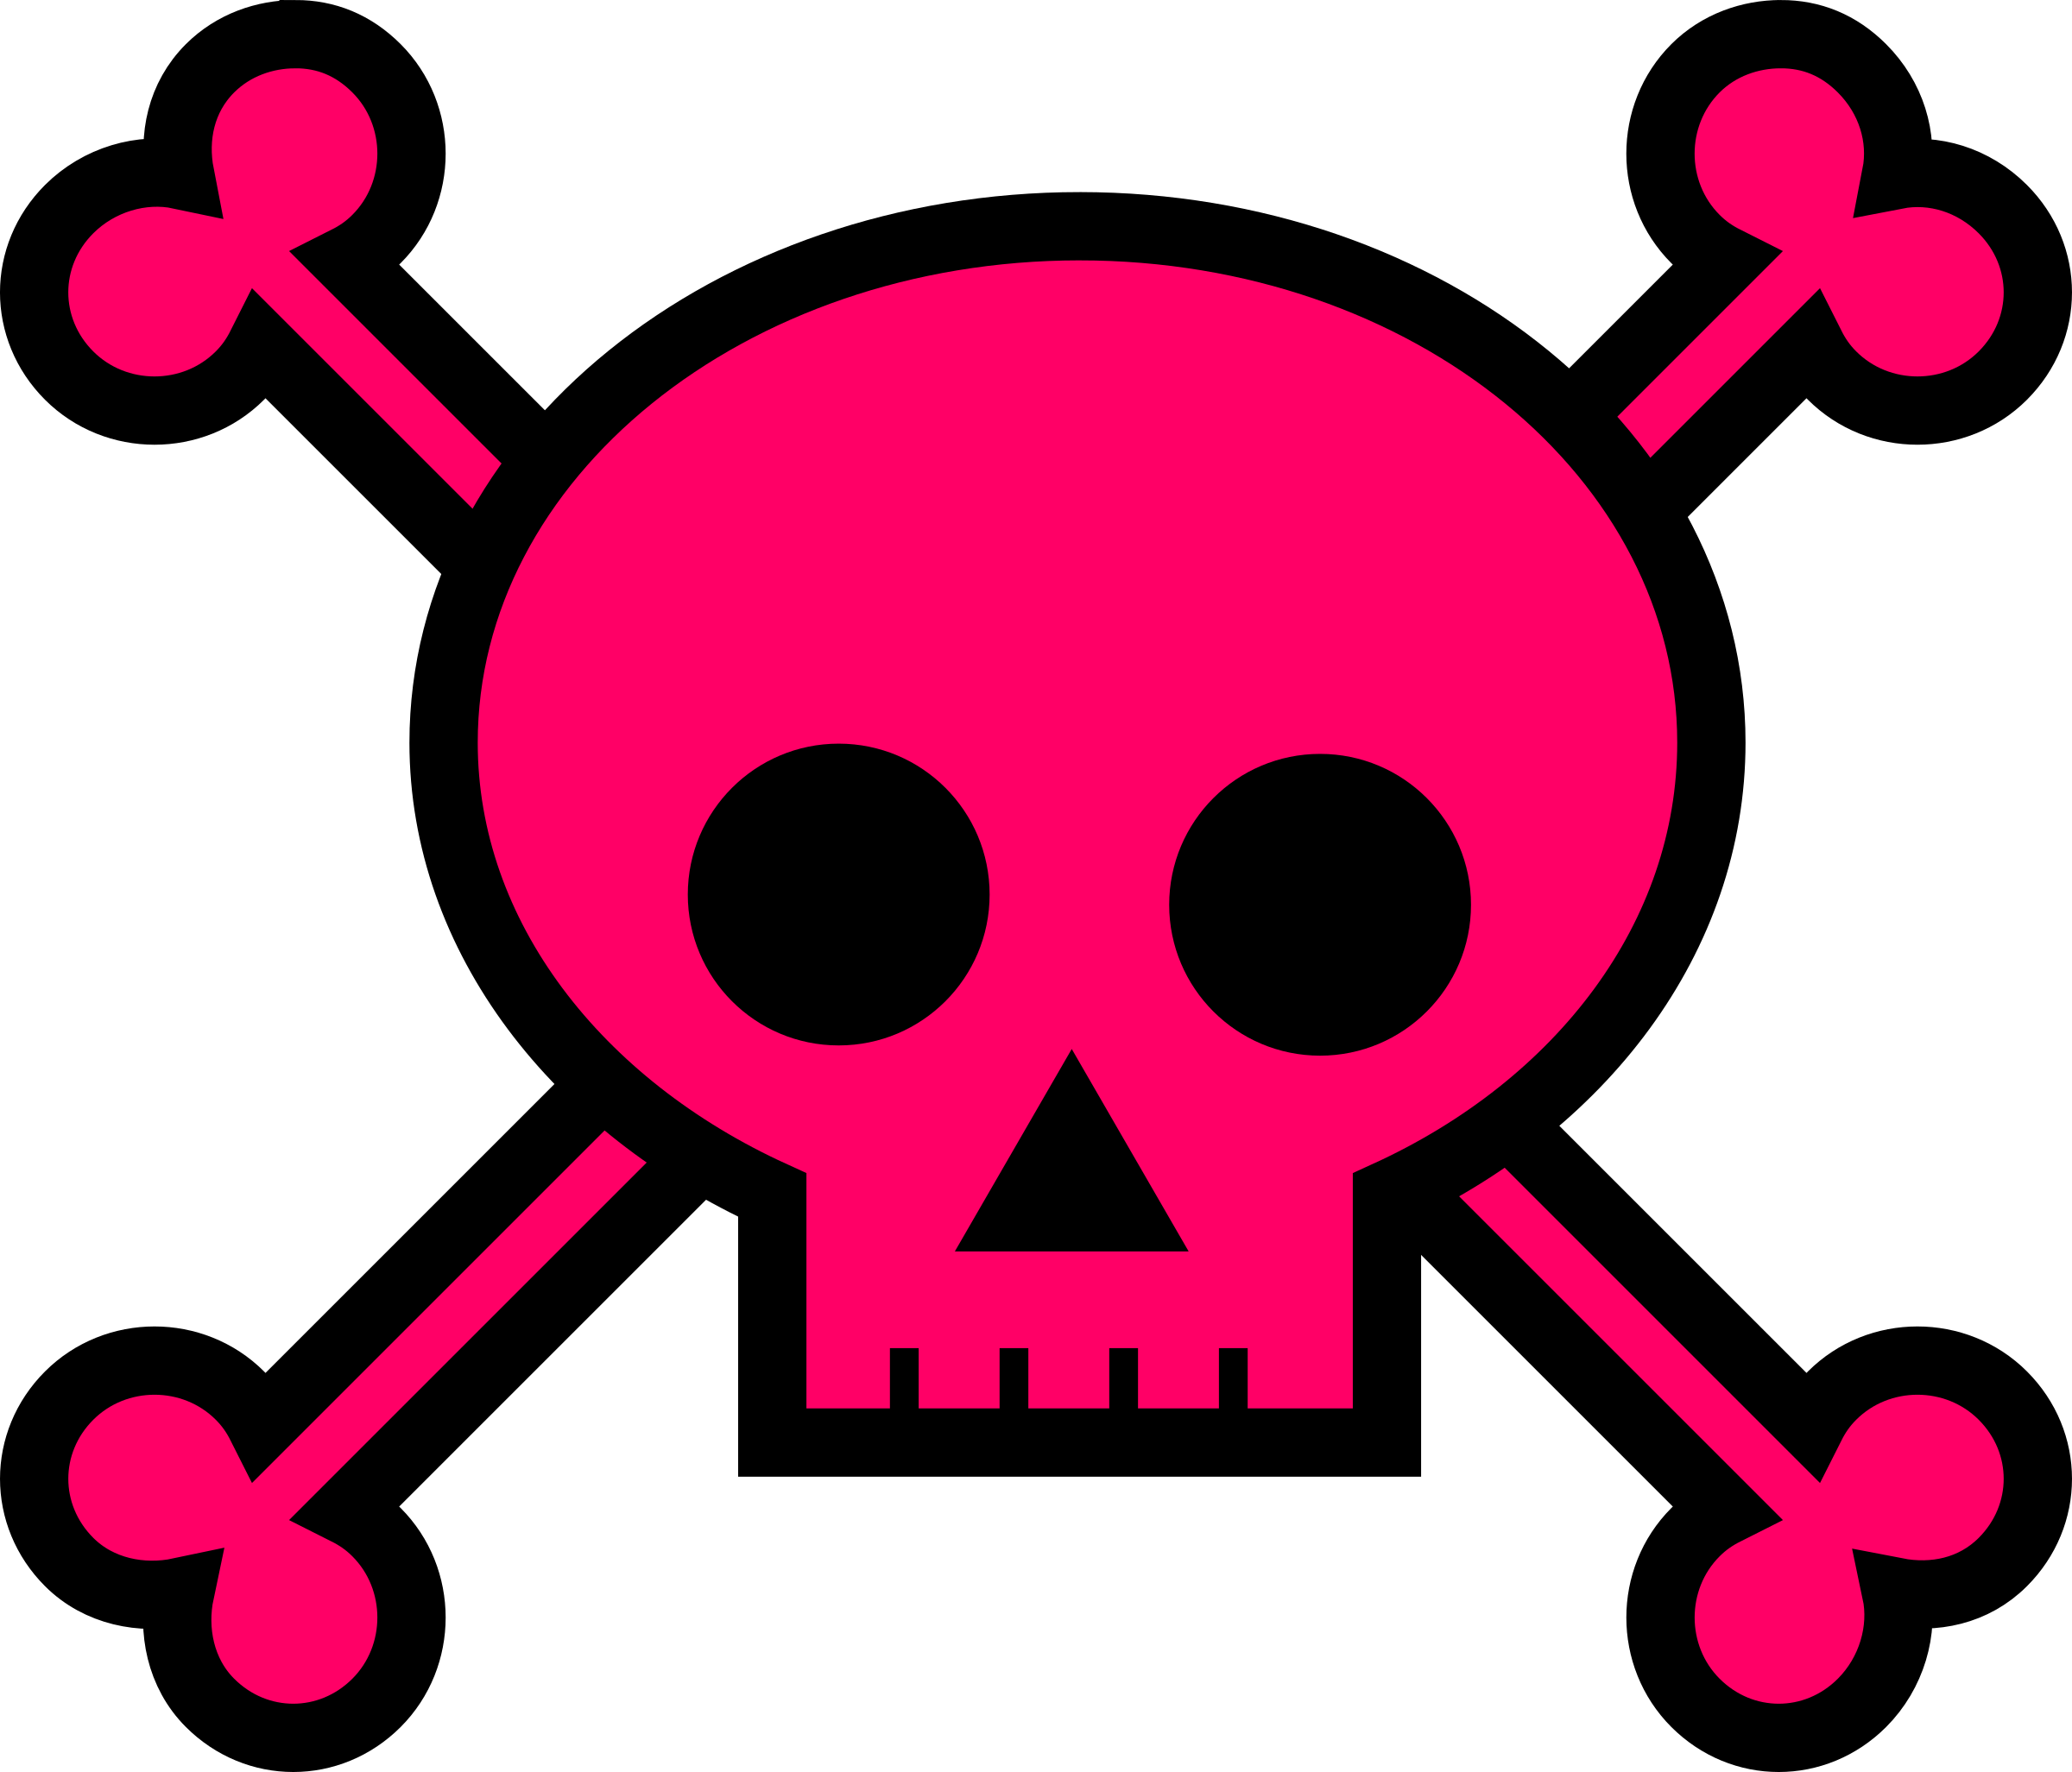 Pink skull png. Clipart and crossbones large